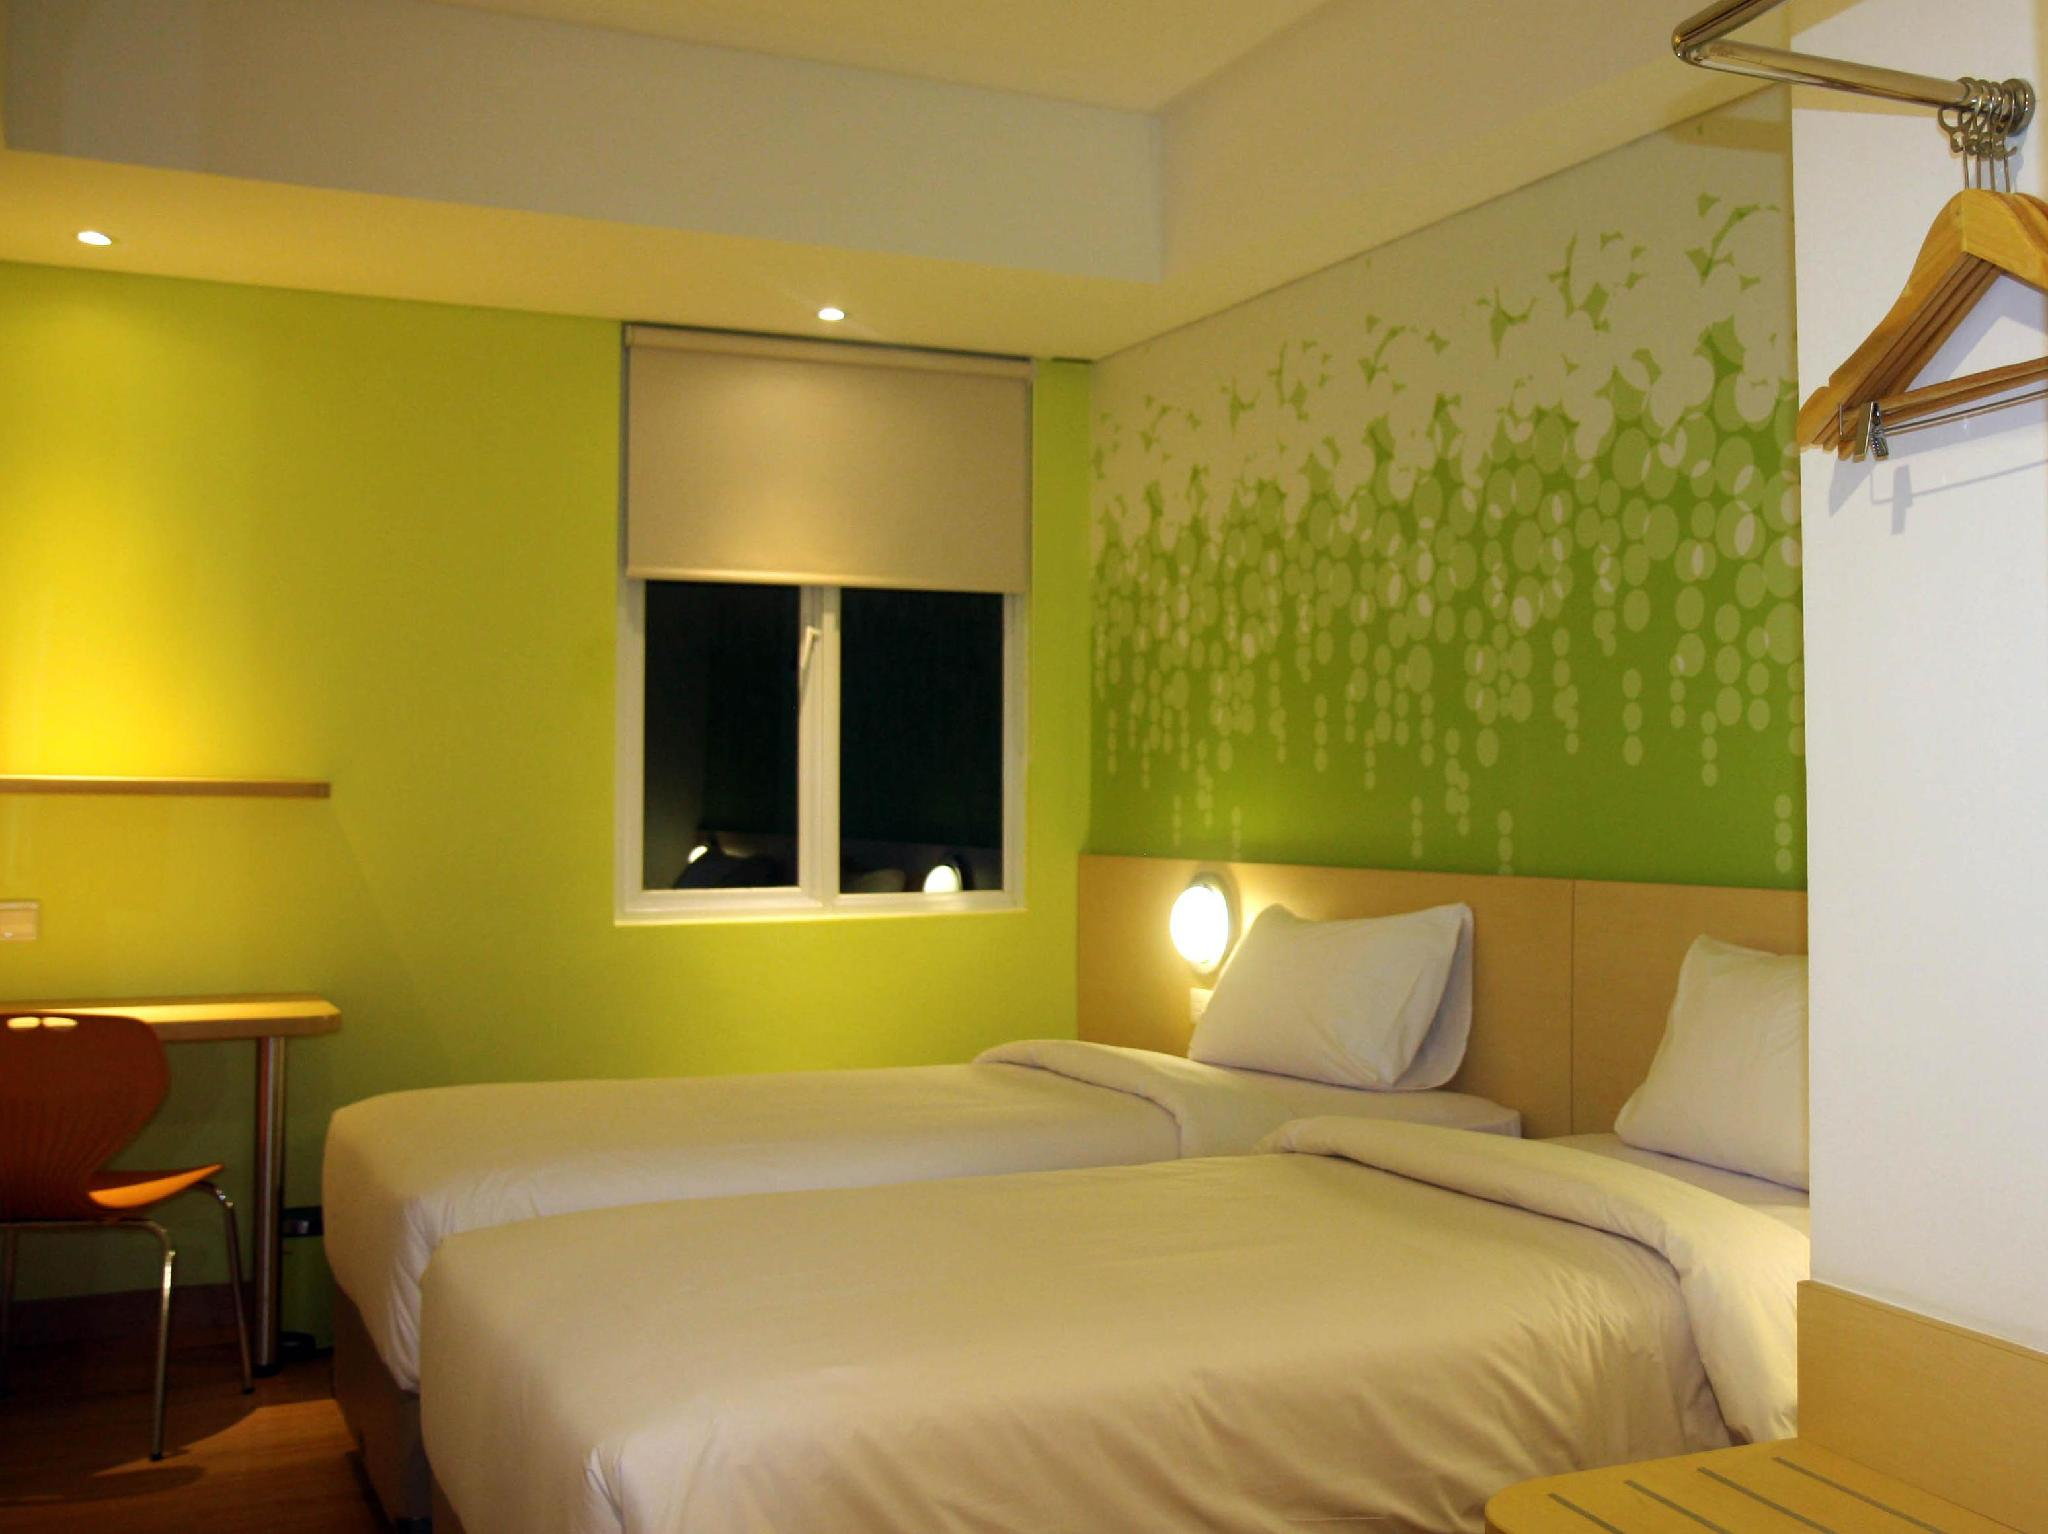 Zest Hotel Bogor, Indonesia - Photos, Room Rates & Promotions